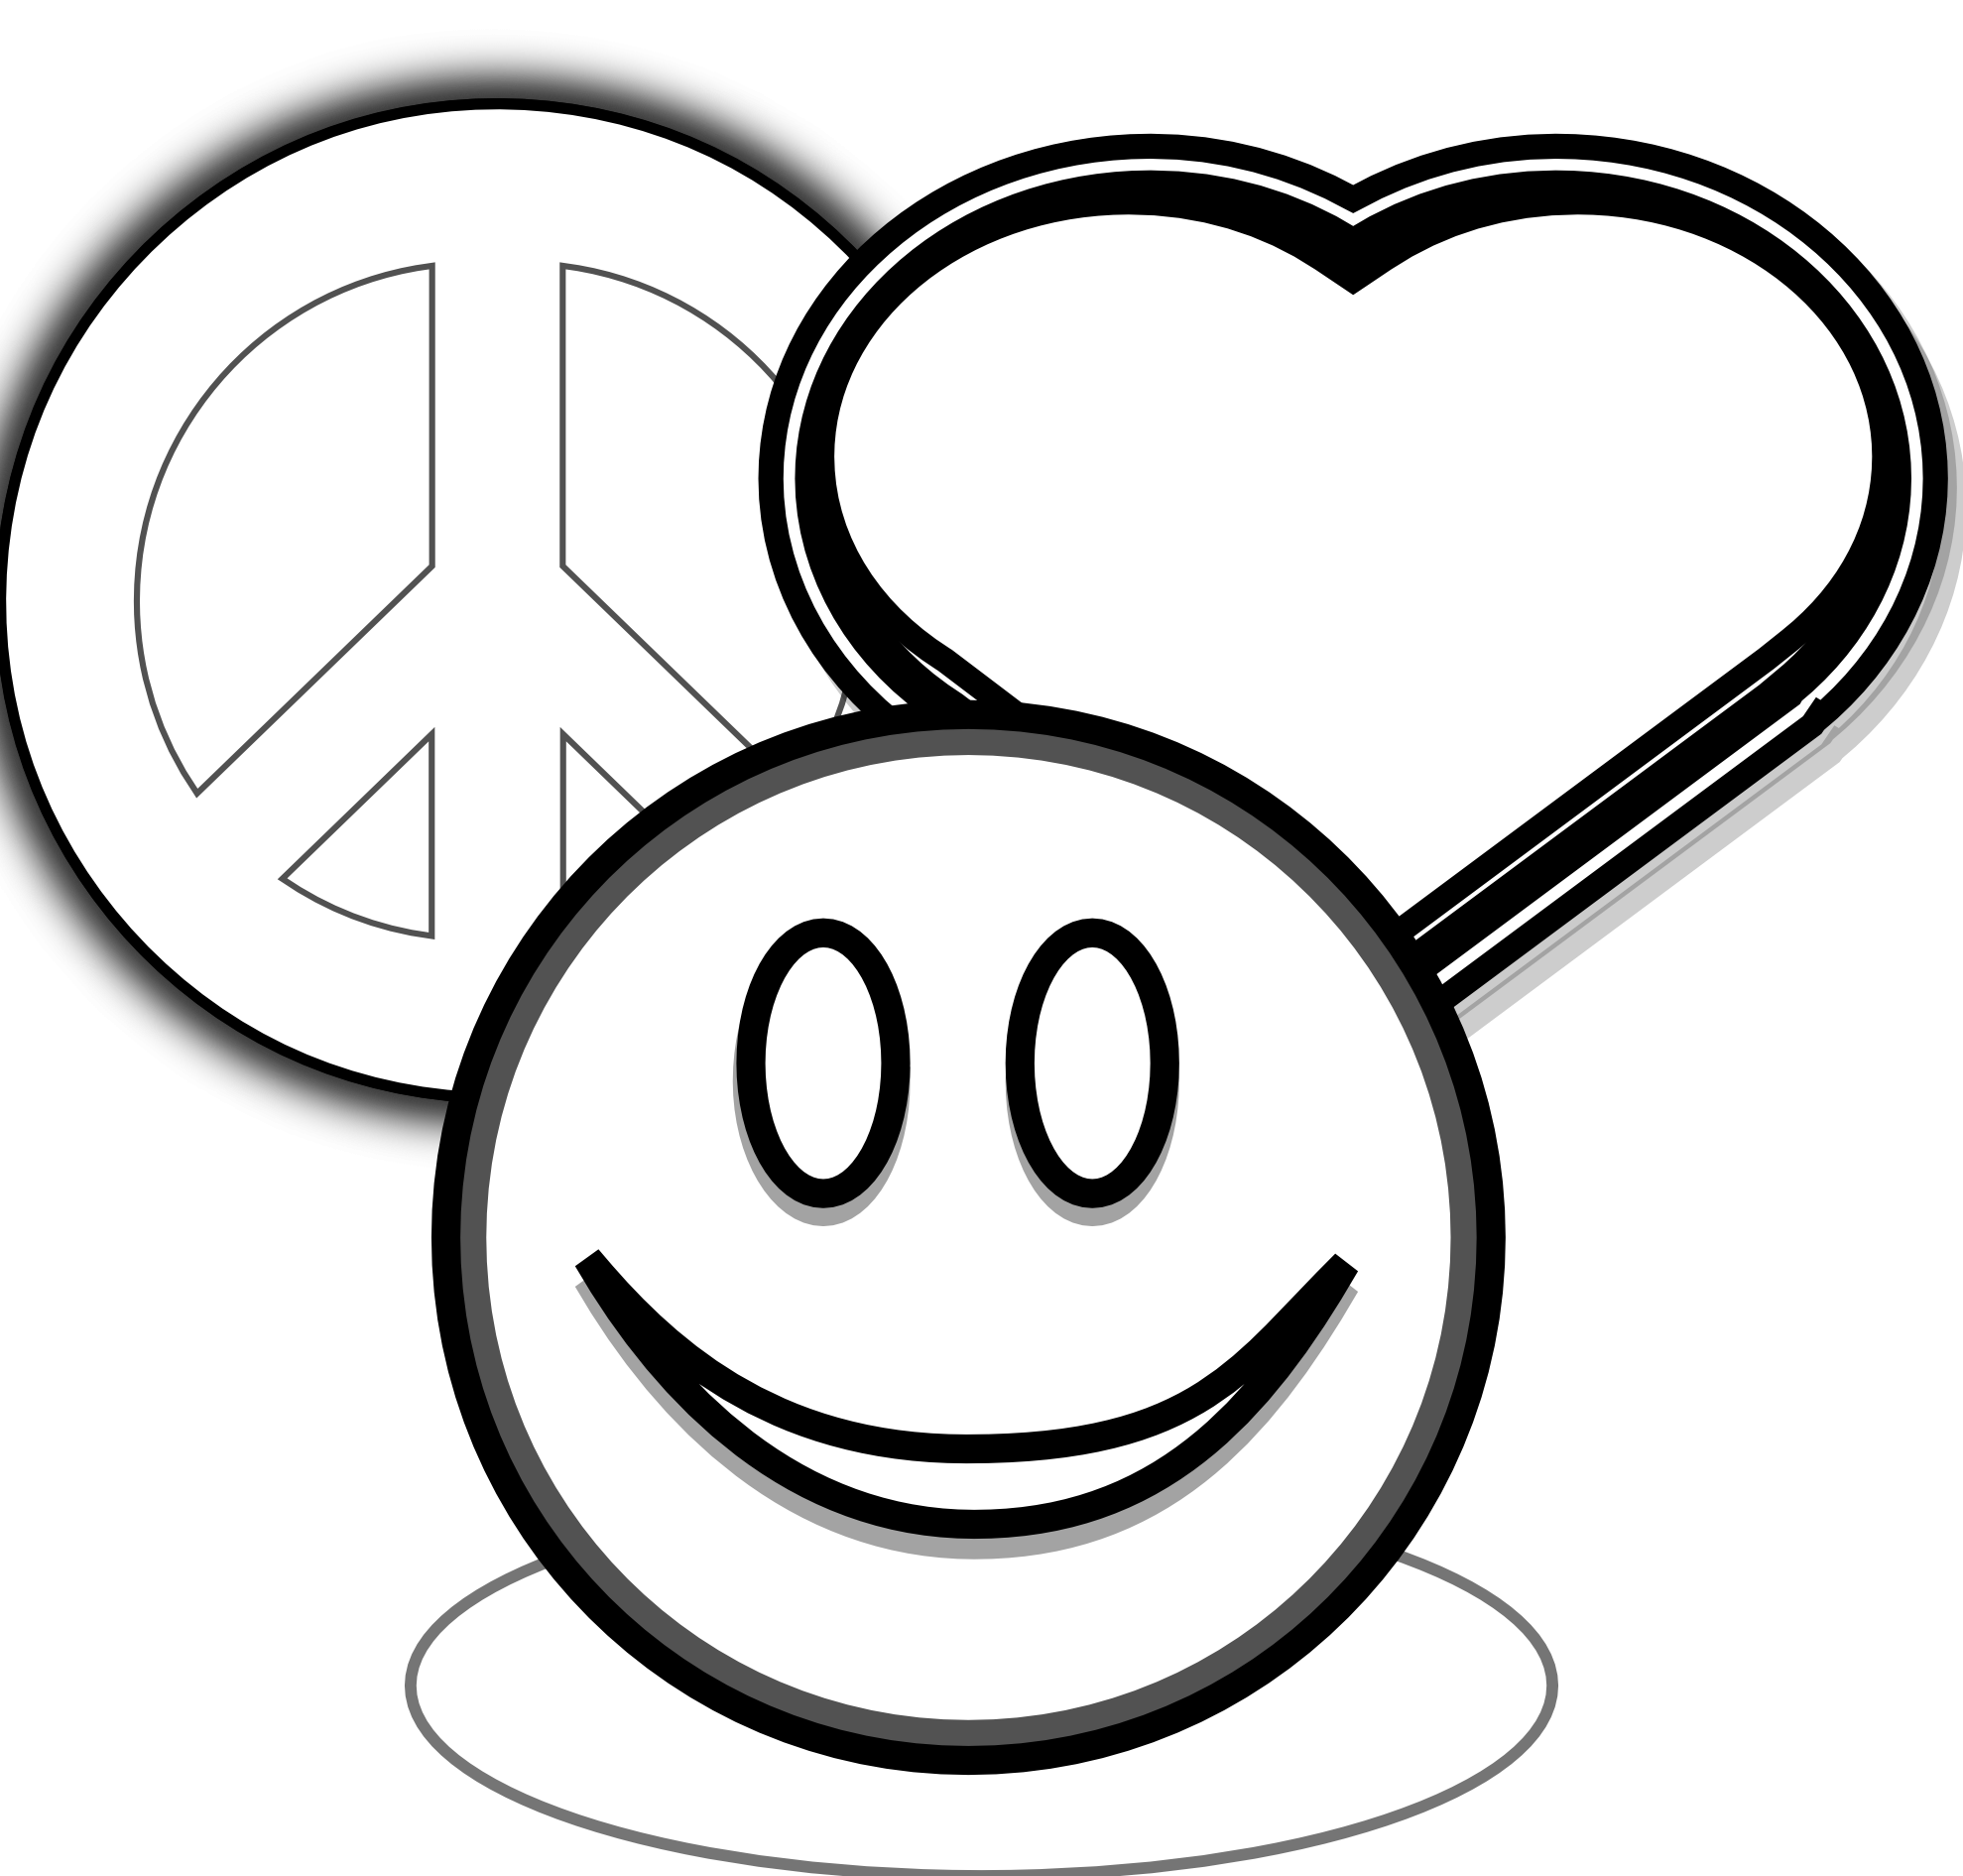 Coloring pages of peace. Hearts clipart sign